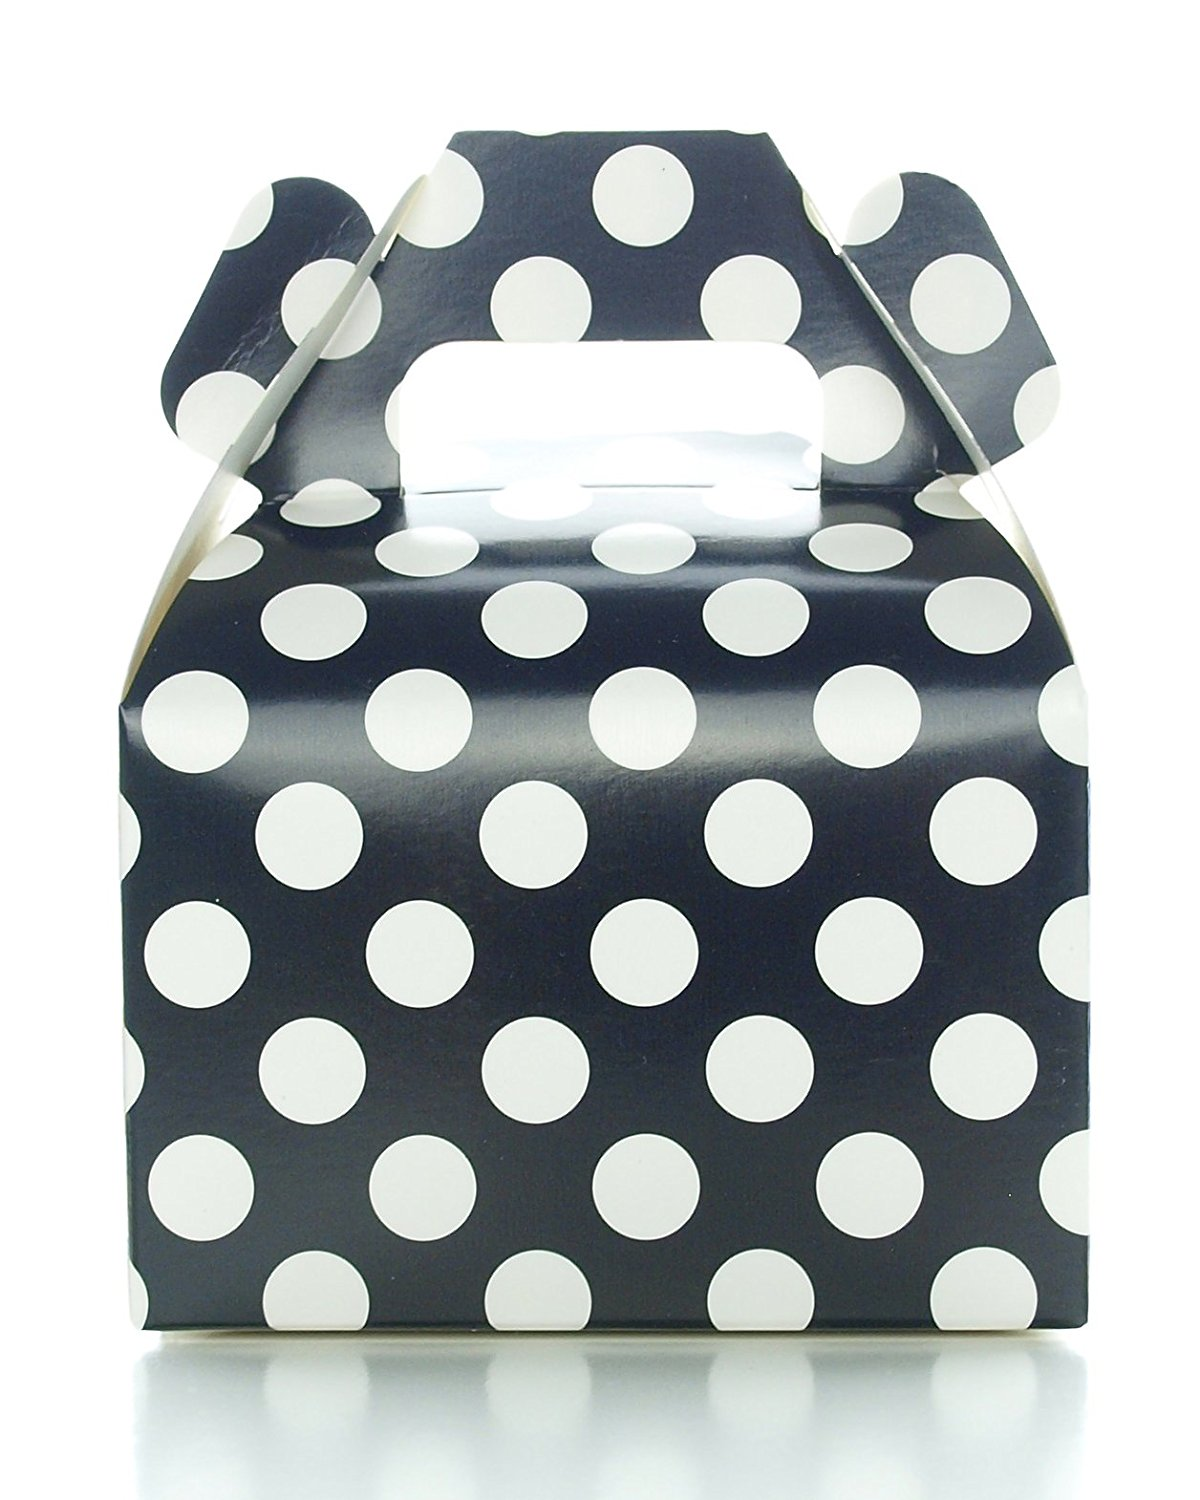 Buy Party Favor Candy Boxes, Black Polka Dot (12 Pack) - Black Candy ...